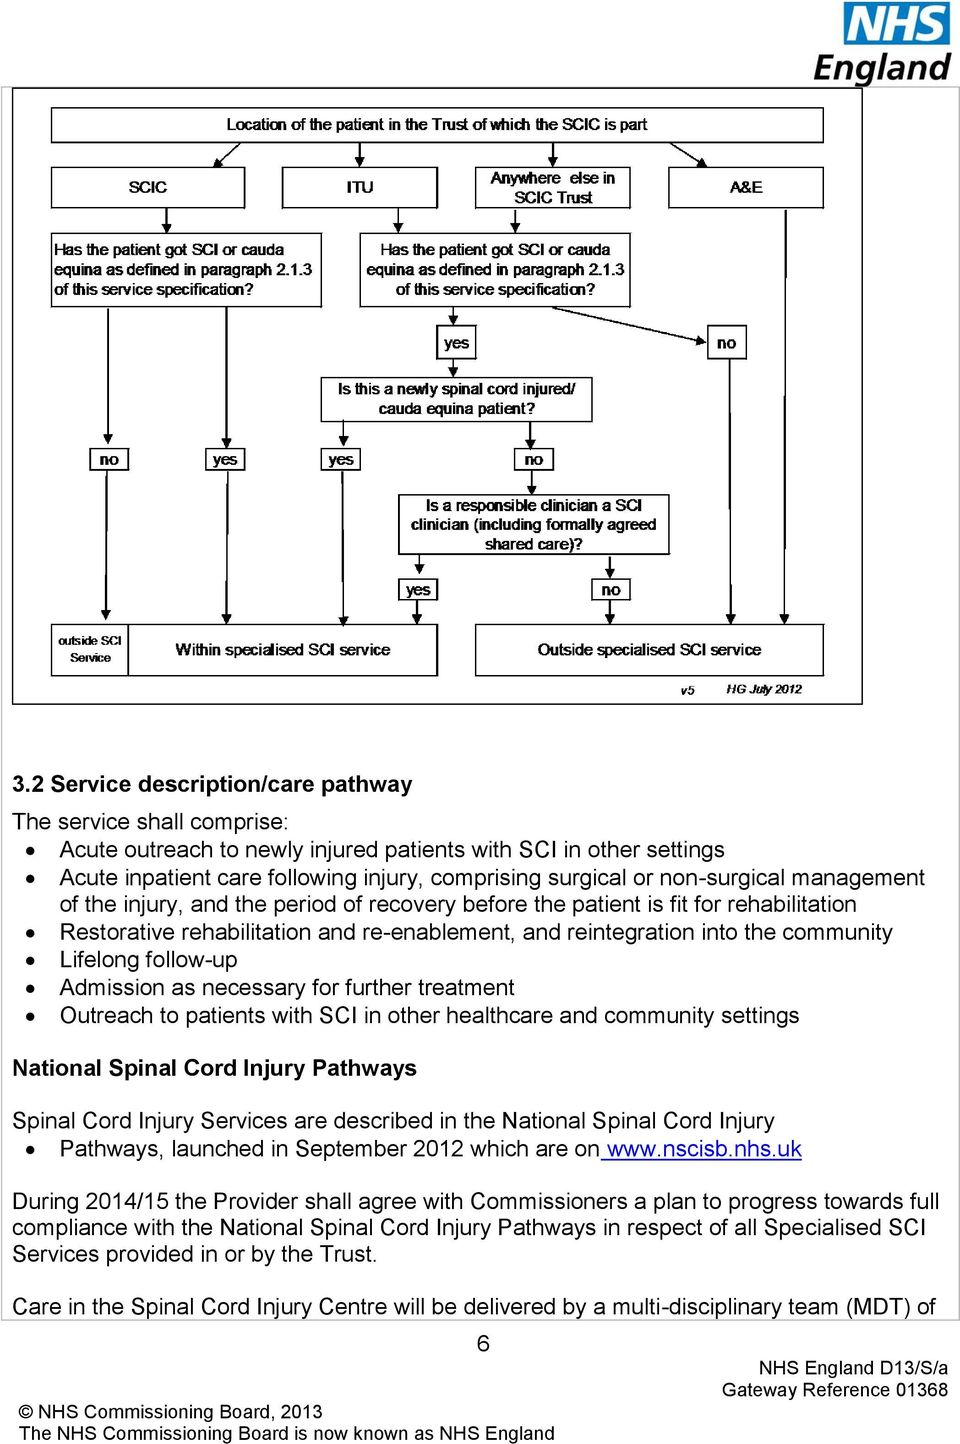 Lifelong follow-up Admission as necessary for further treatment Outreach to patients with SCI in other healthcare and community settings National Spinal Cord Injury Pathways Spinal Cord Injury